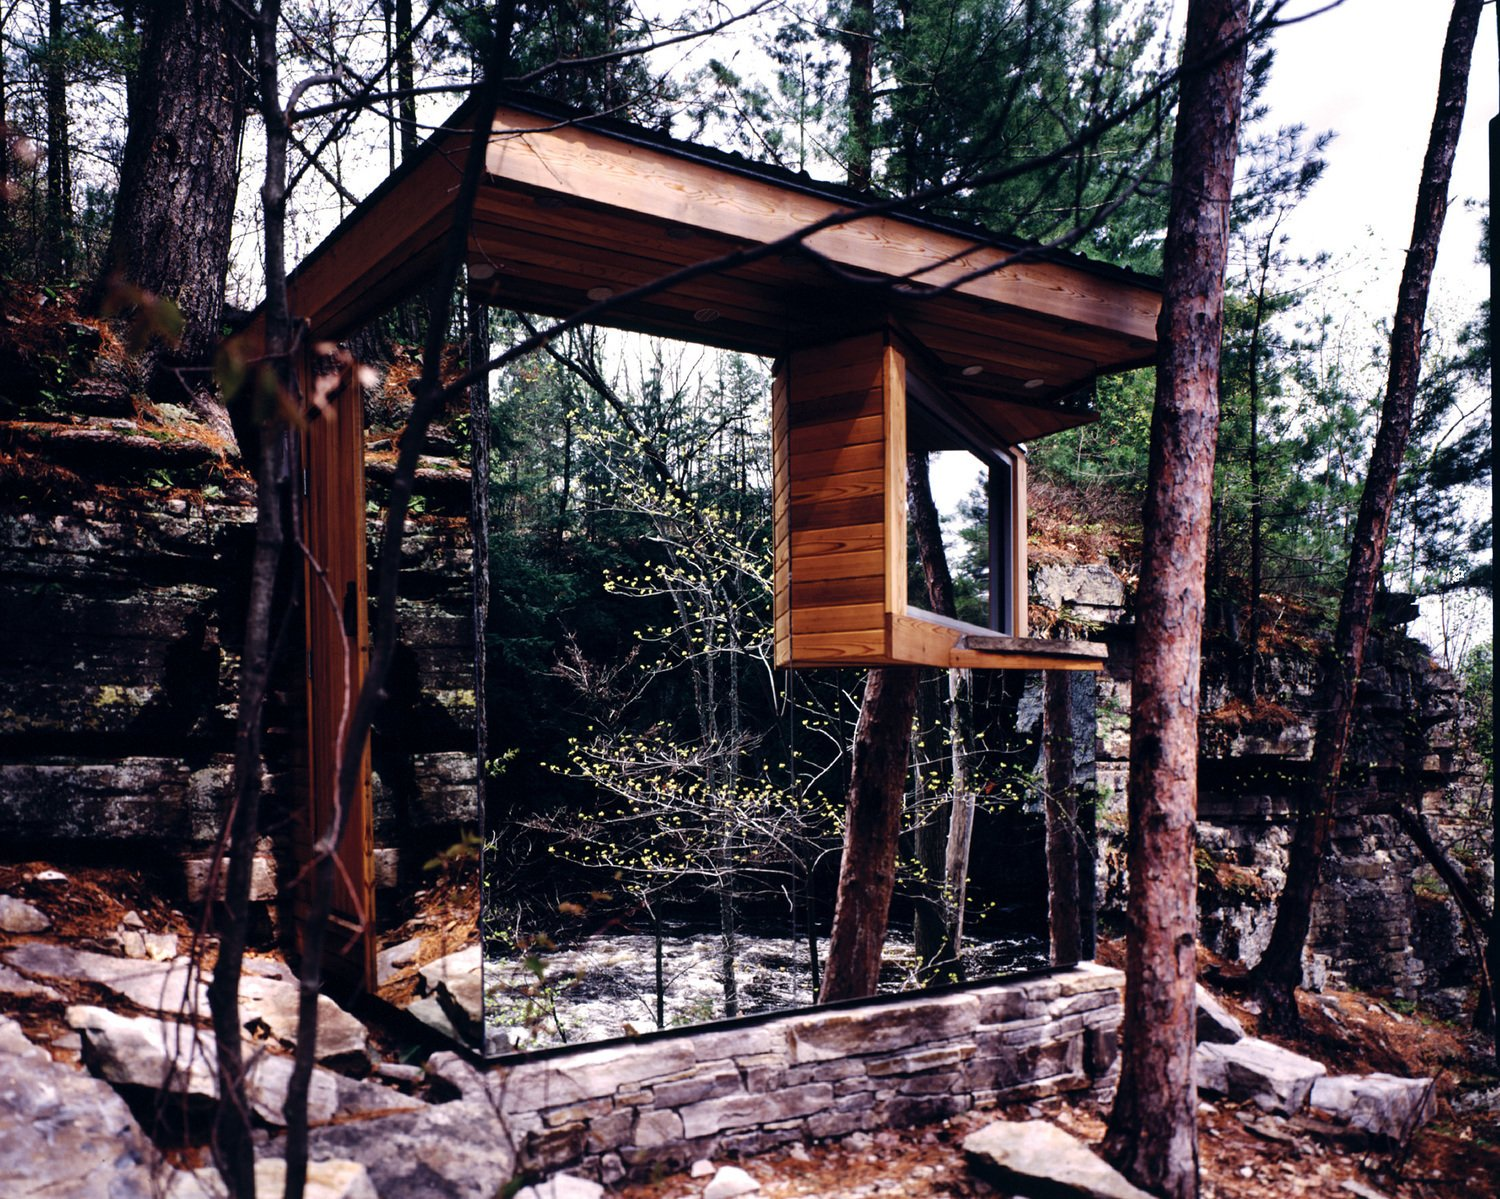 The Cadyville Sauna was designed as a compact structure, covered with mirrors, built up against a cliff. Escape to One of These 10 Otherworldly Outdoor Saunas - Photo 4 of 11